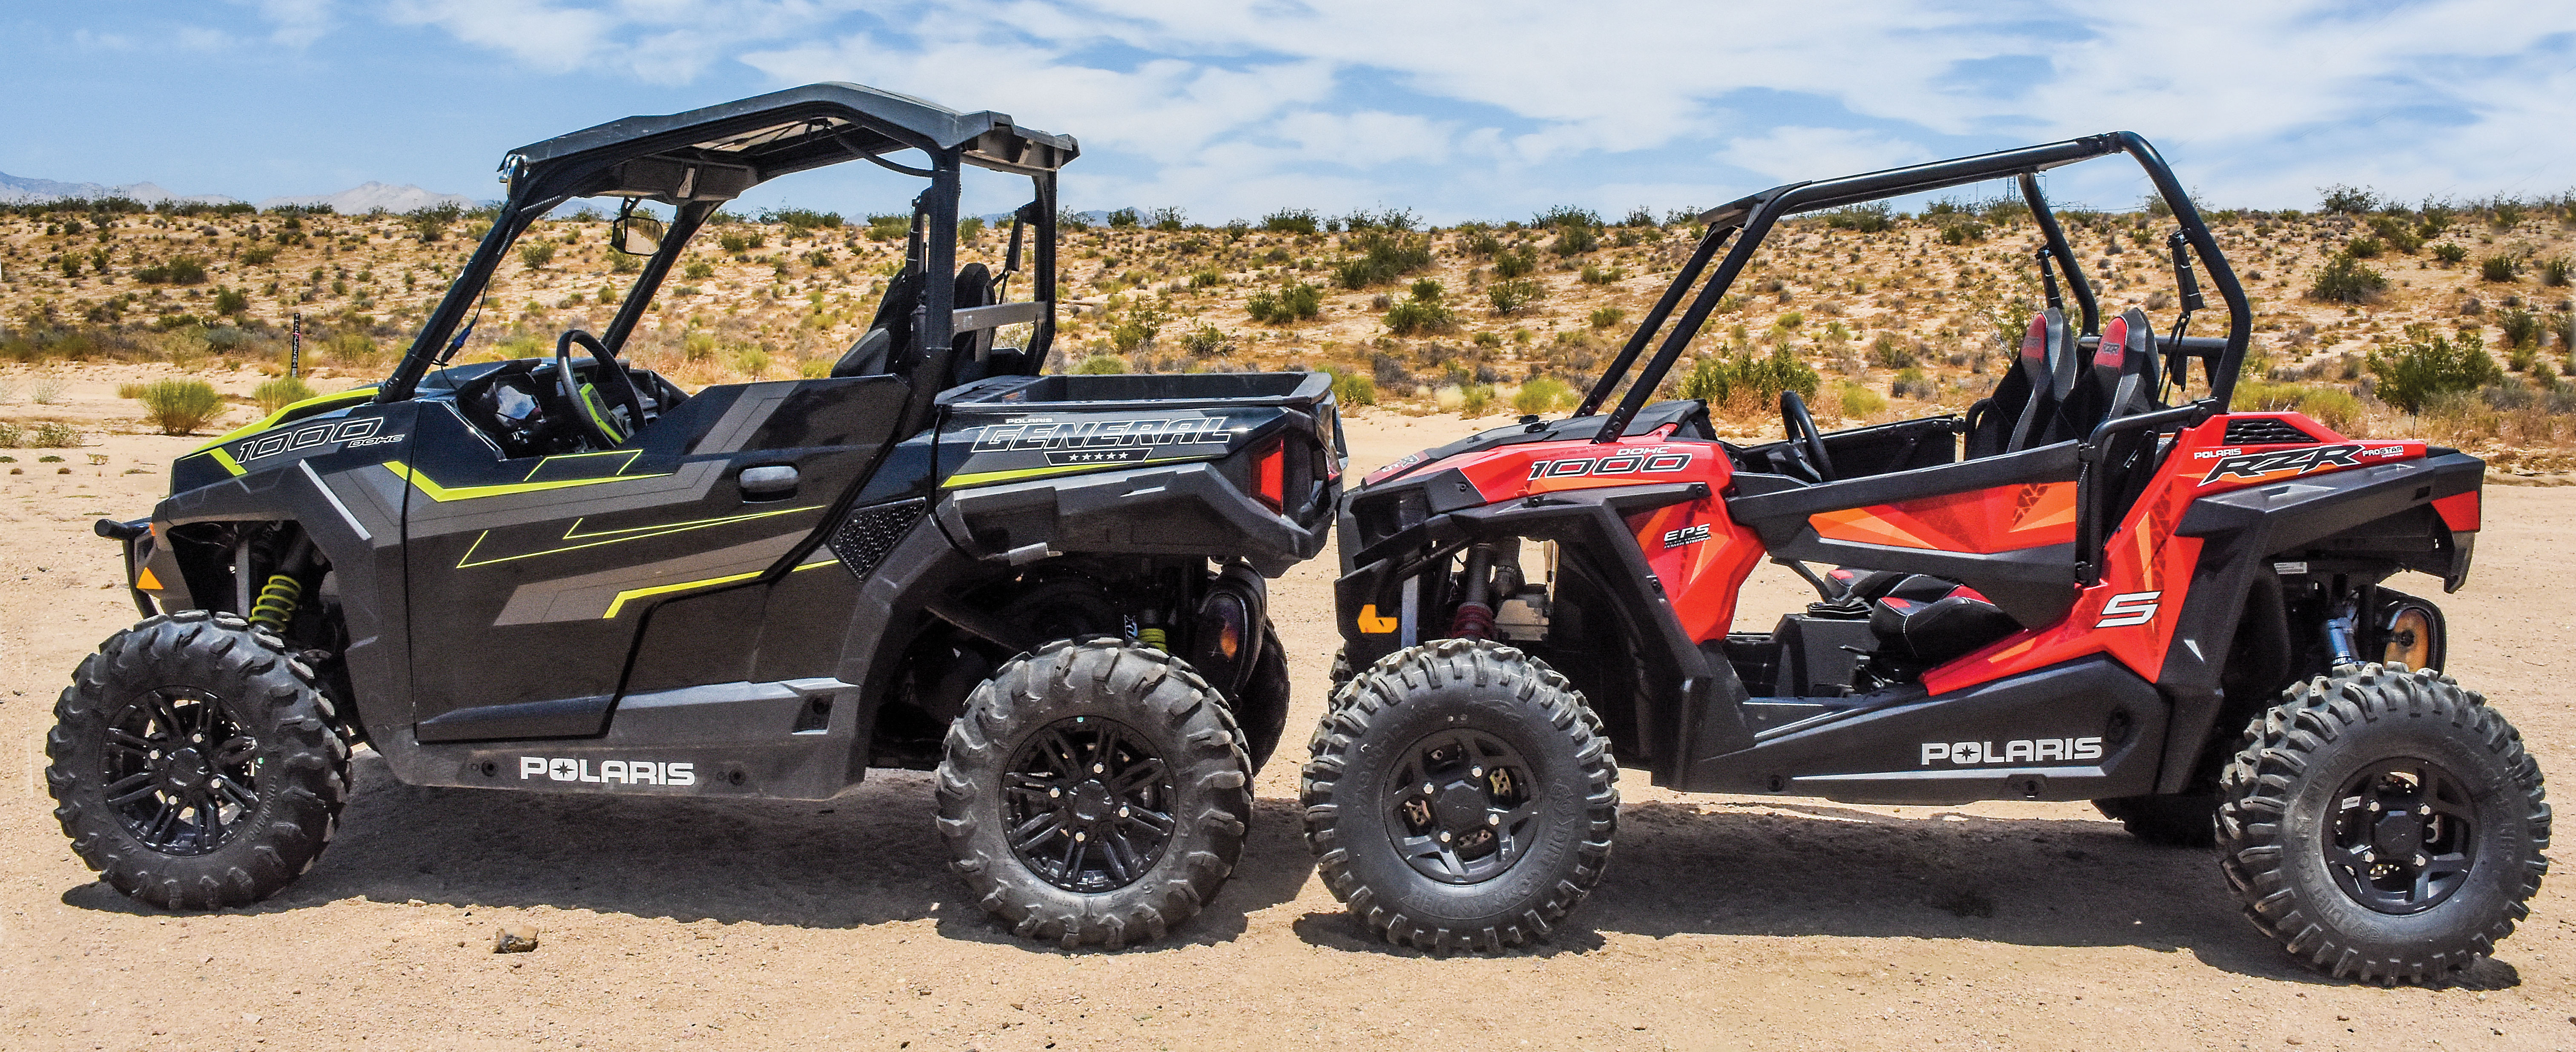 We D Like To See The Wer Rzr S Shocks On General For A Better Faster Ride More Regardless Pick Most Rides